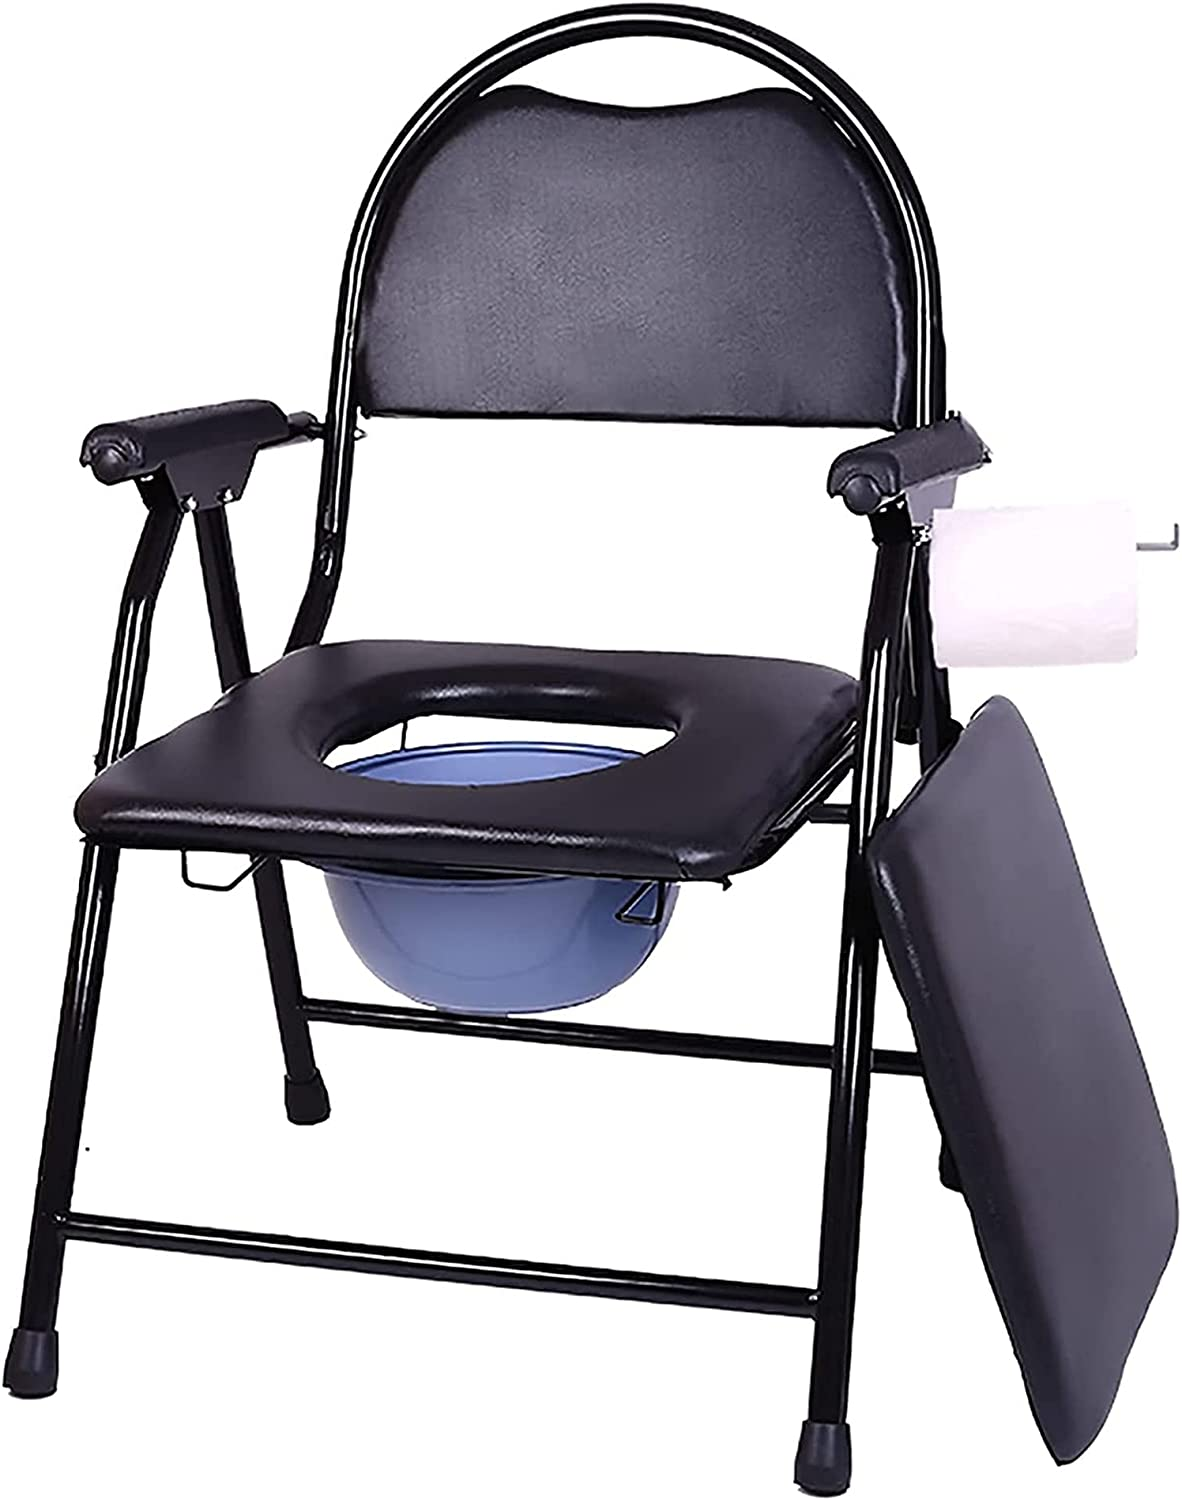 WFY Raised Toilet Today's only At the price of surprise Seat Folding Movable for Chair Elderly